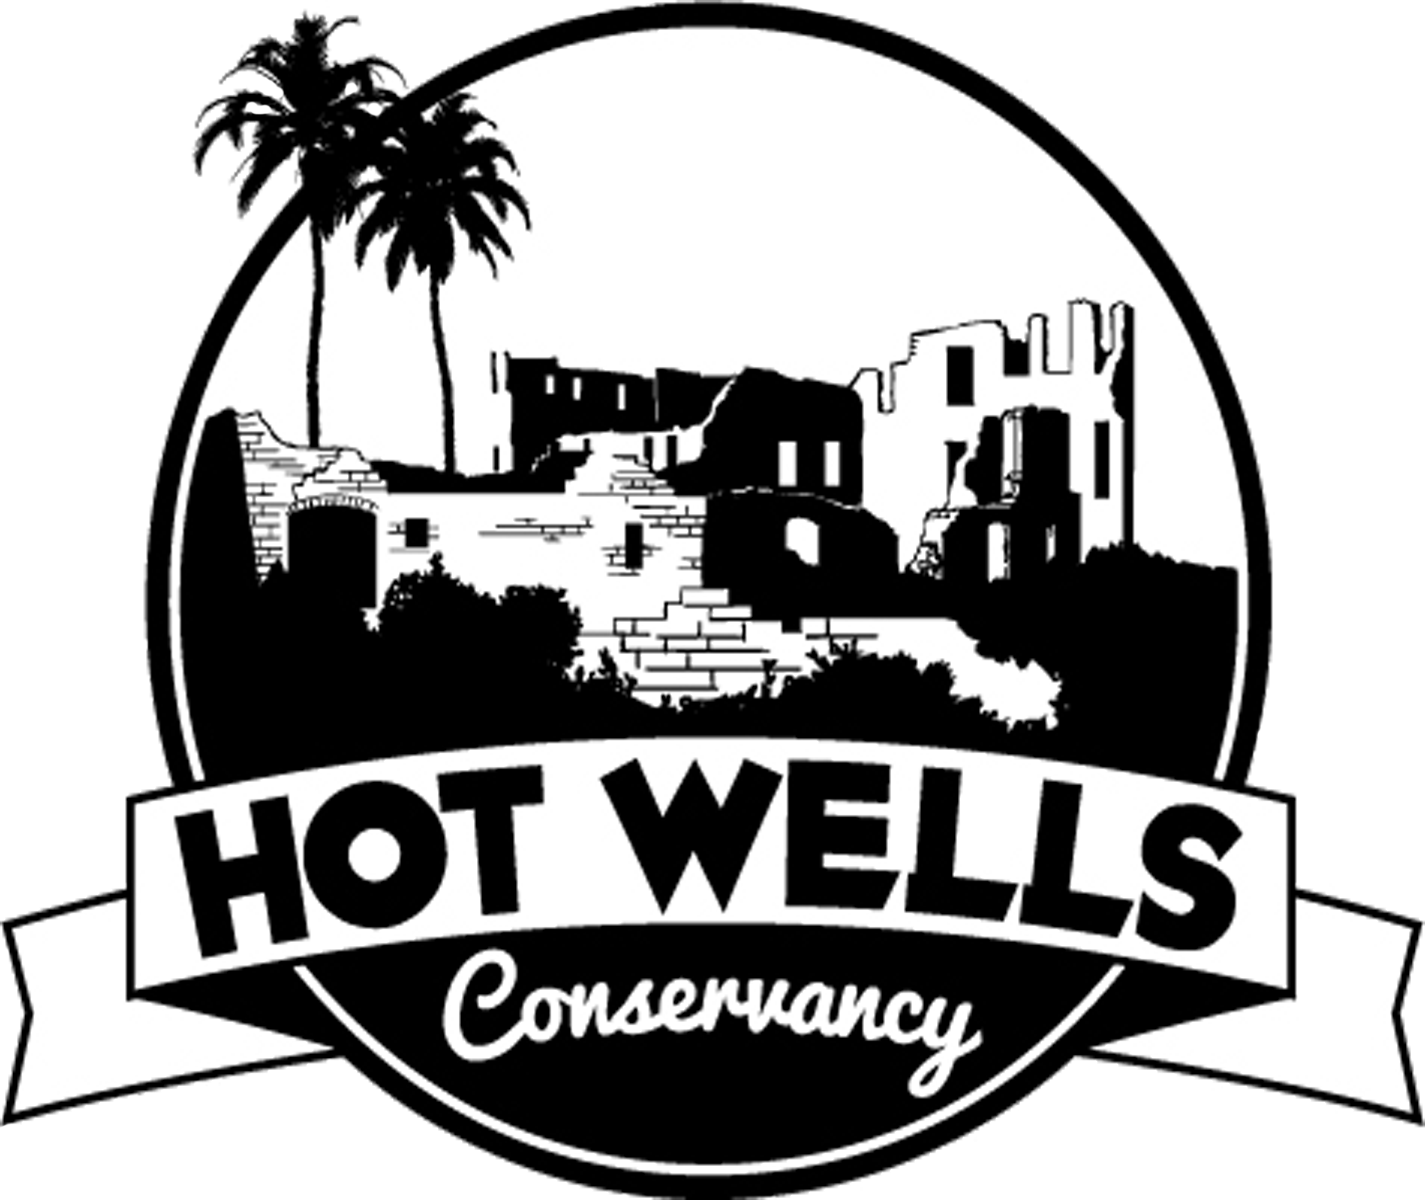 Hotwells Conservancy